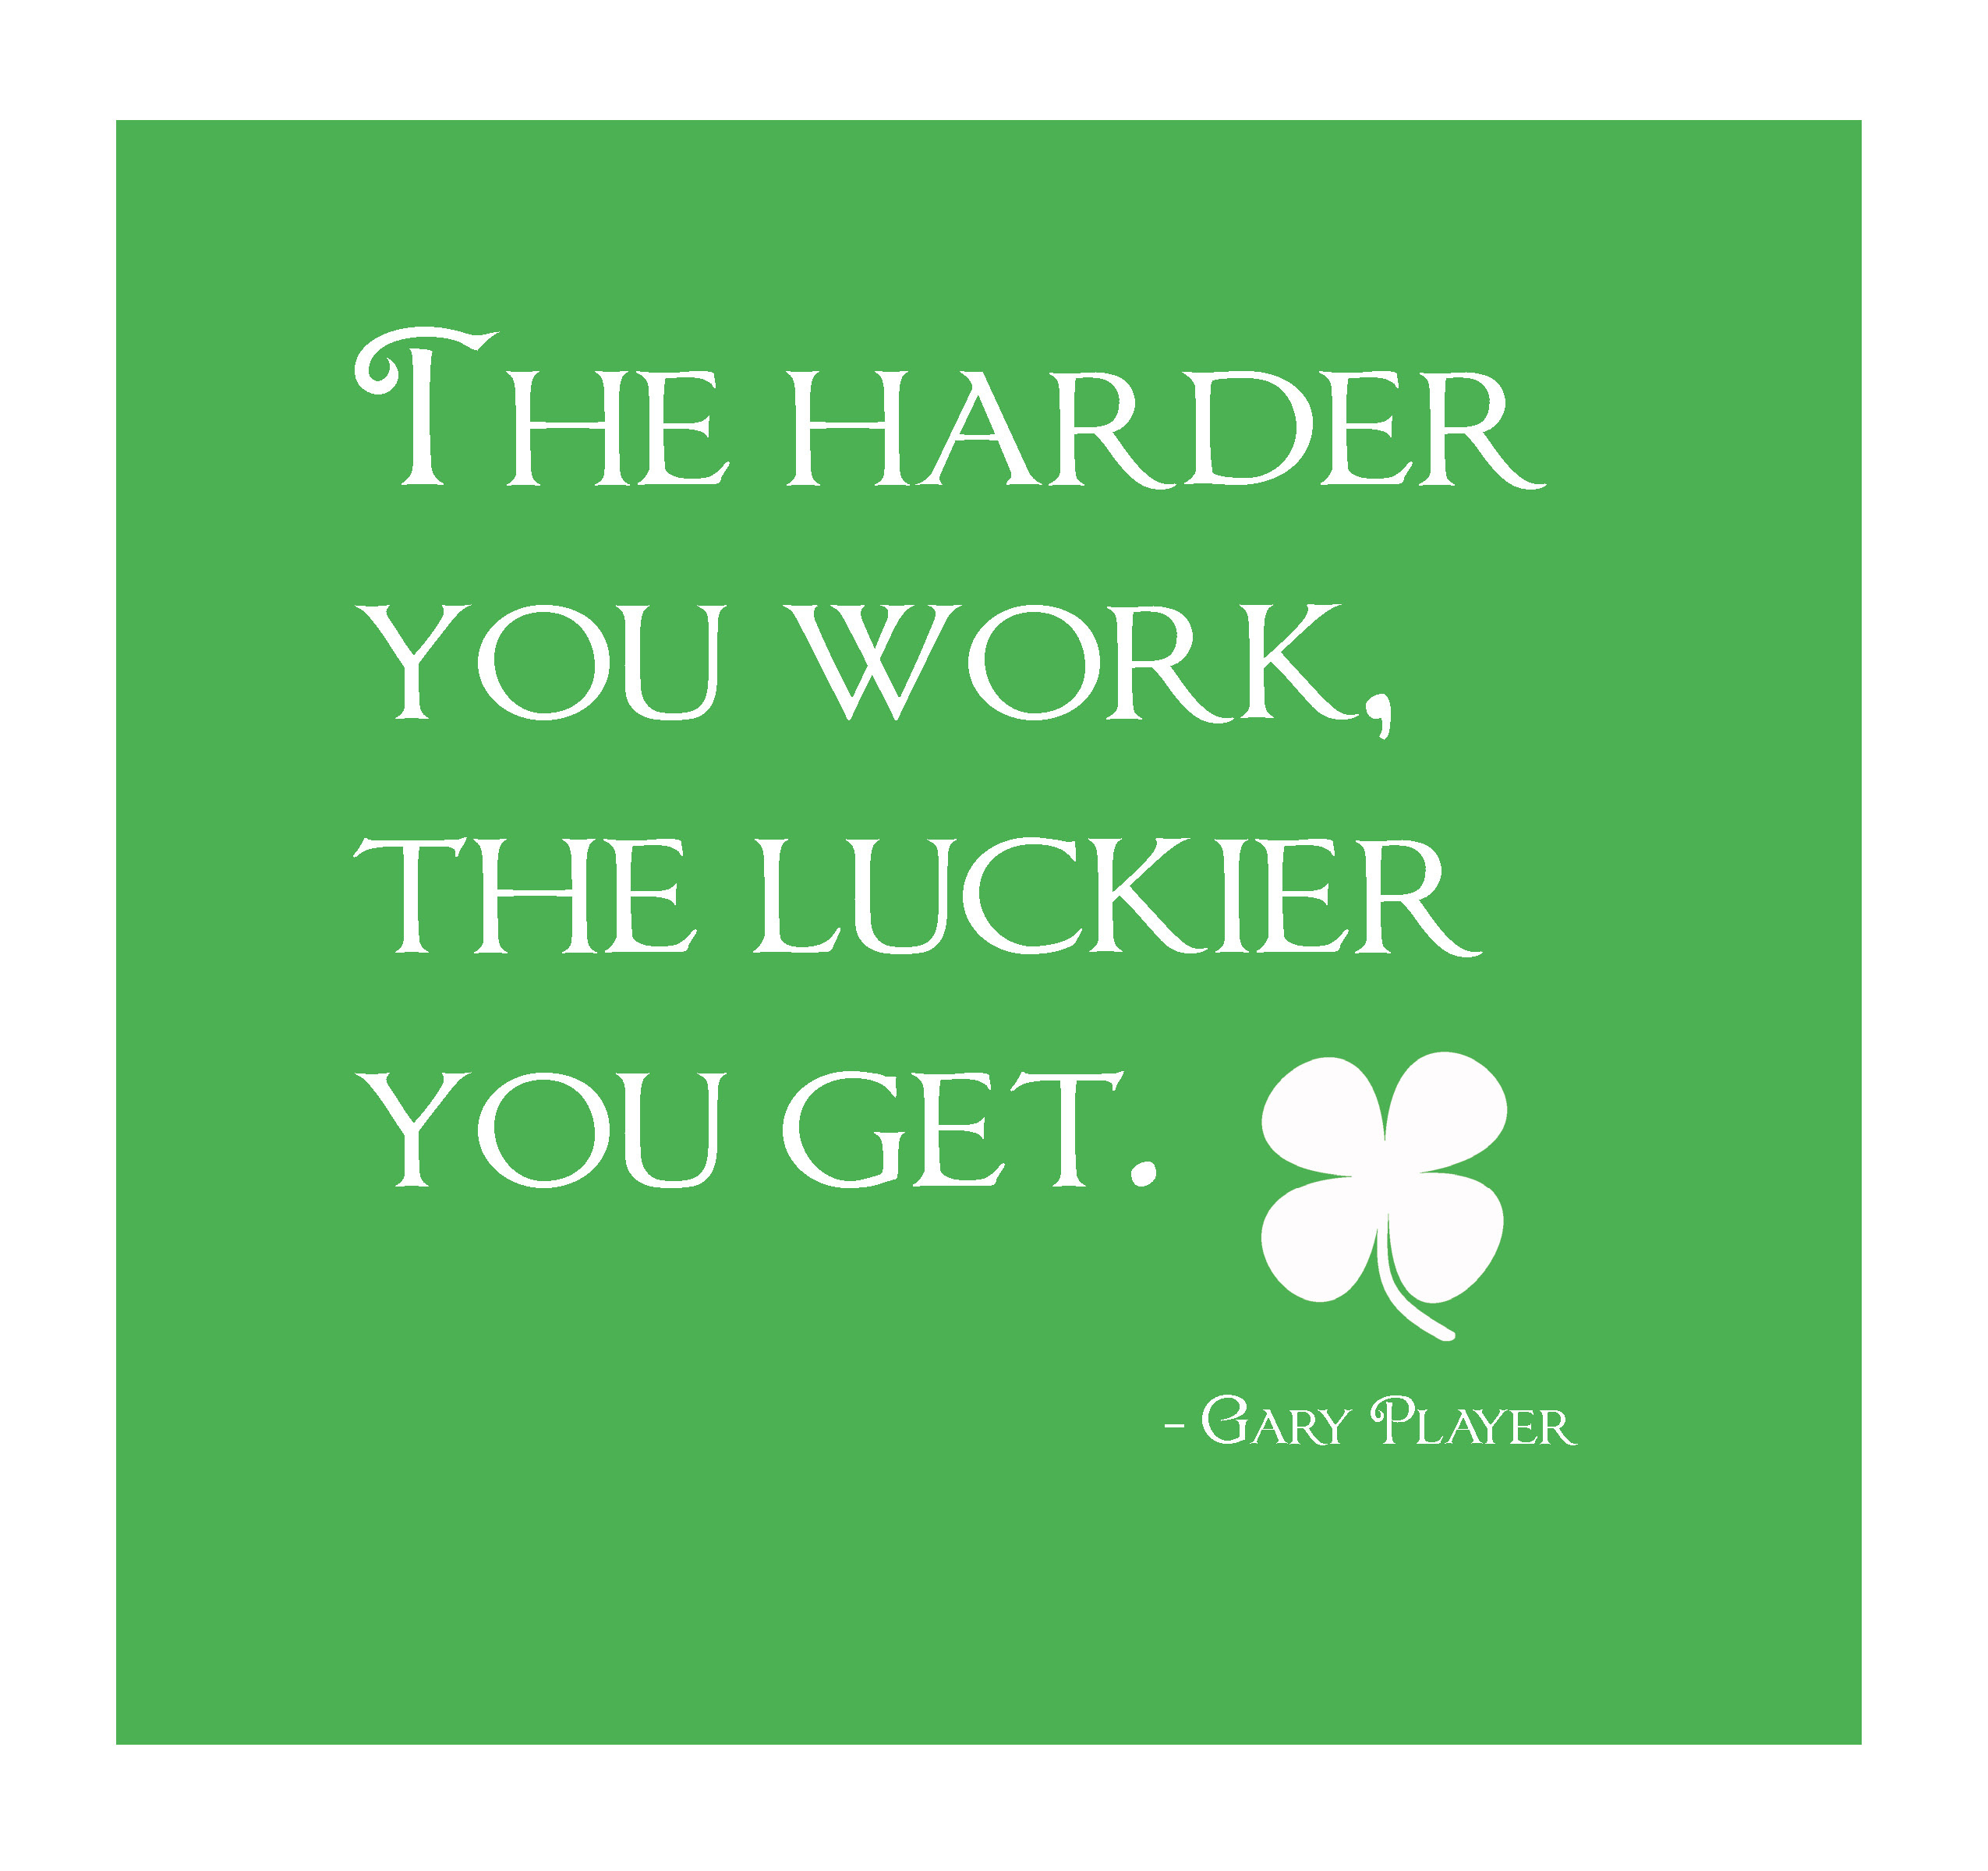 Friday Positive Work Quotes. QuotesGram